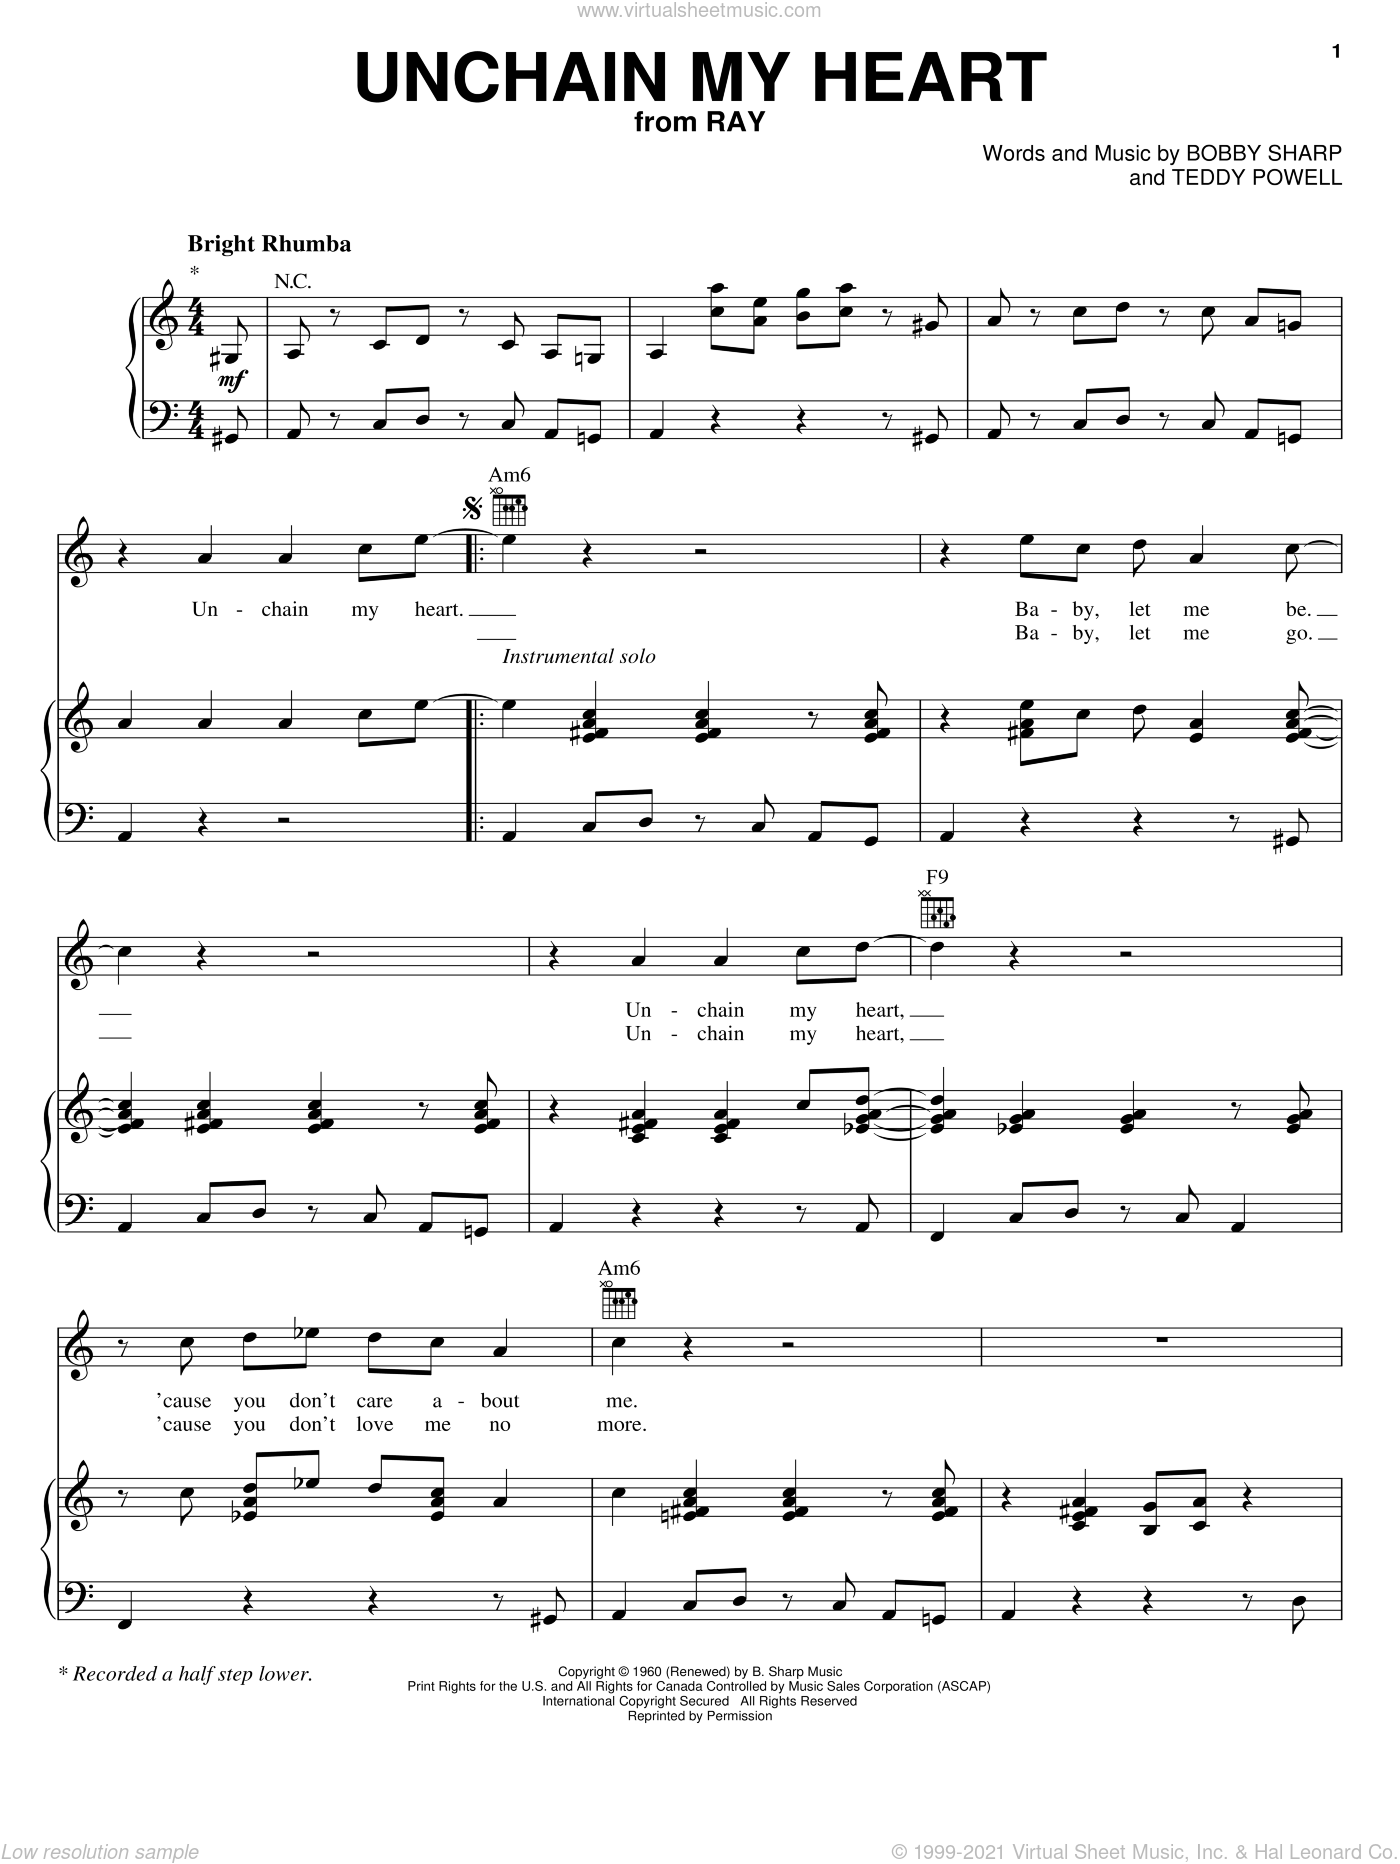 Unchain My Heart sheet music for voice, piano or guitar by Ray Charles. Score Image Preview.